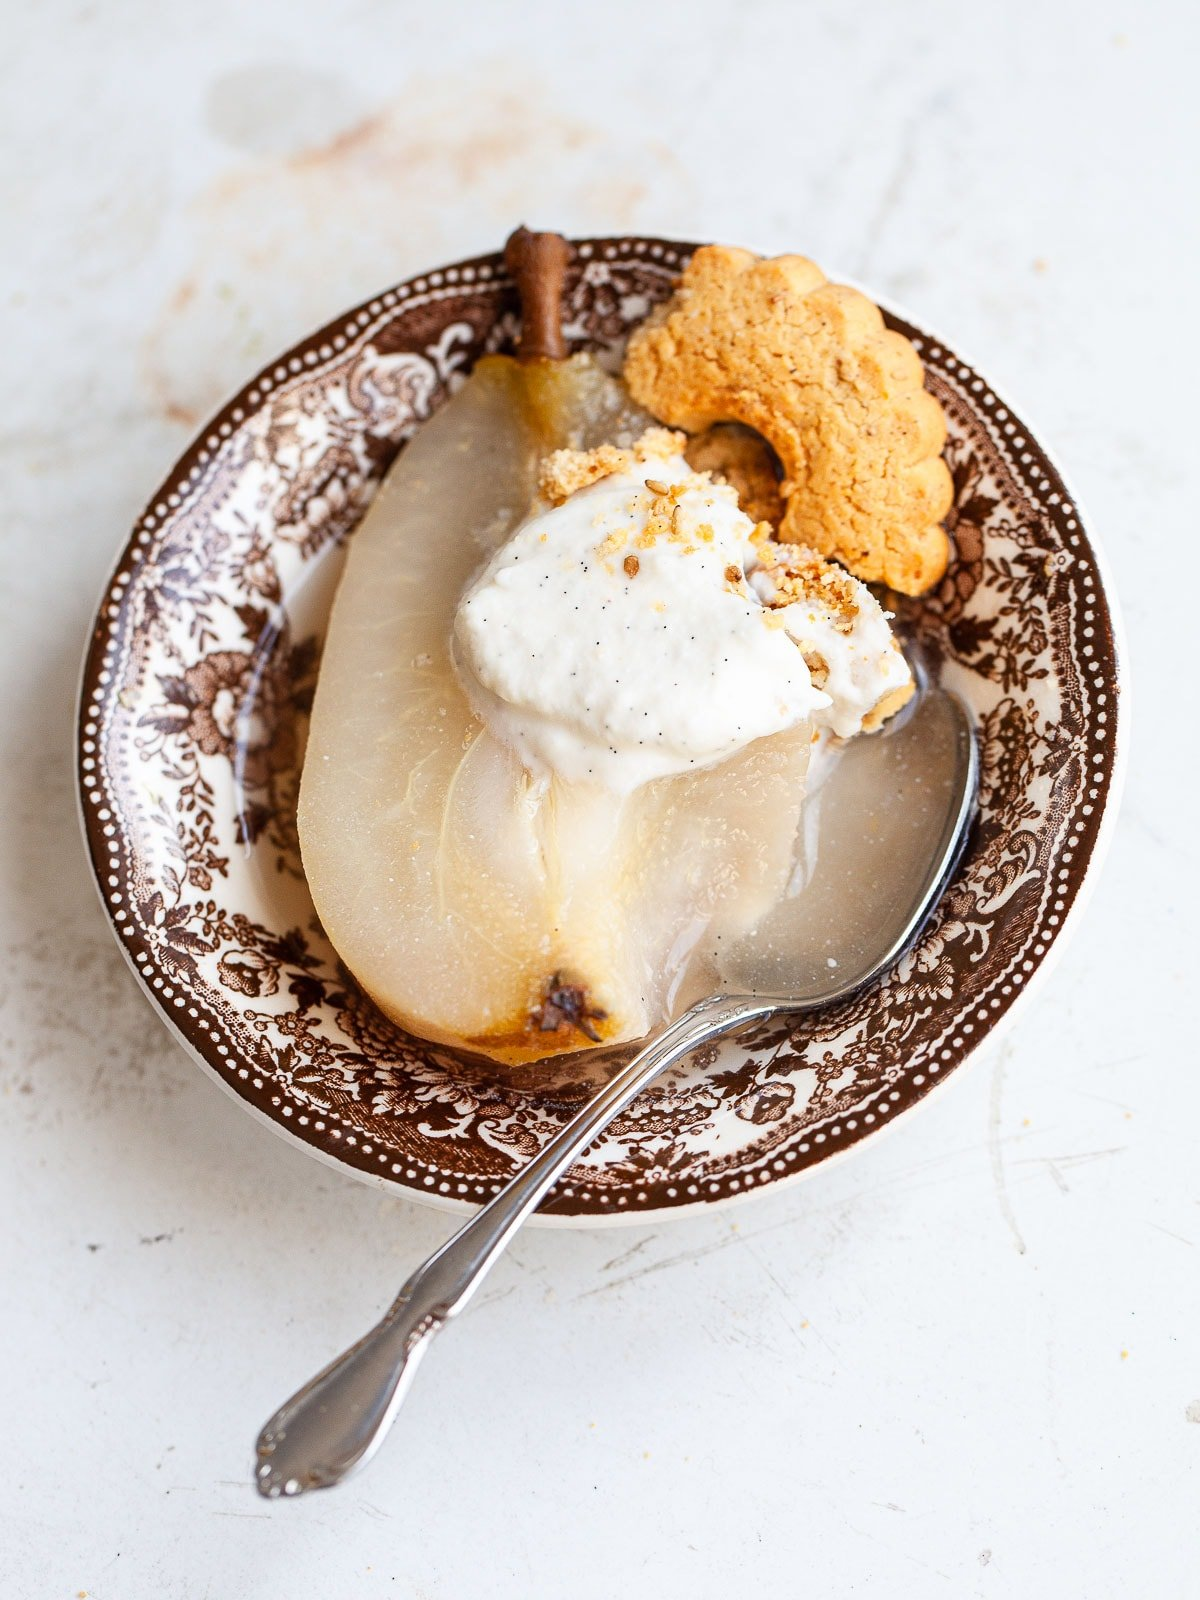 A brown transferware dish with a poached pear and spoon, topped with ricotta cream and a crumbled cookie.